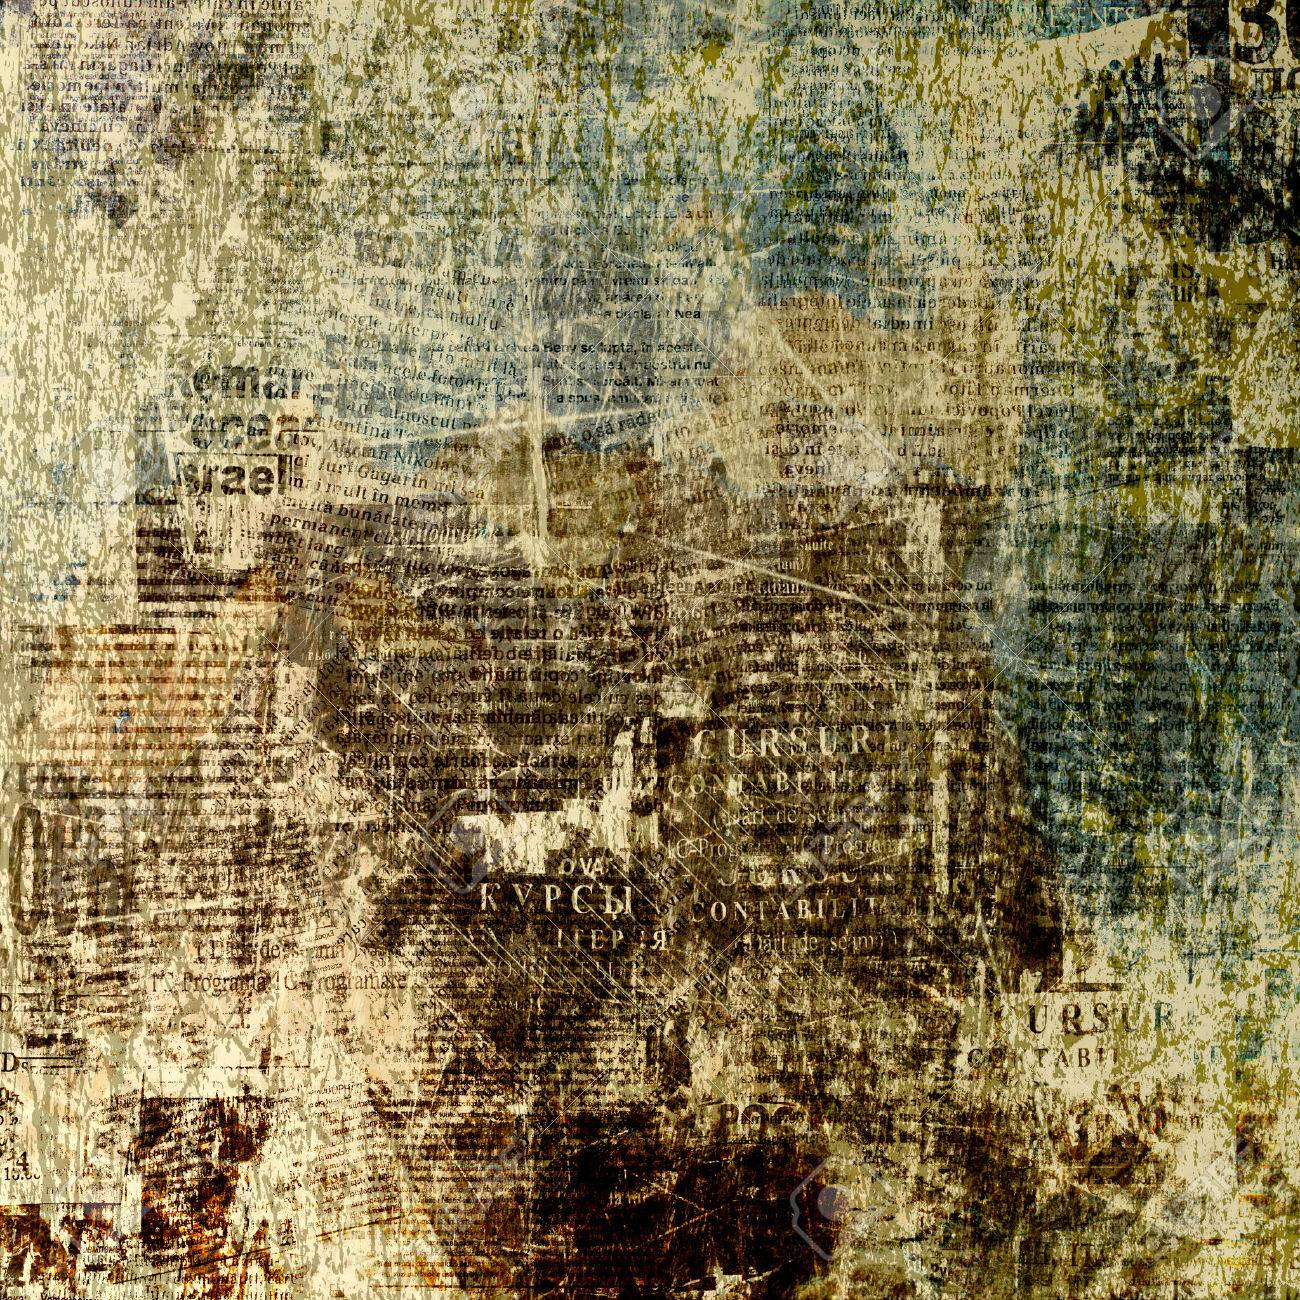 grunge abstract newspaper background for design with old torn